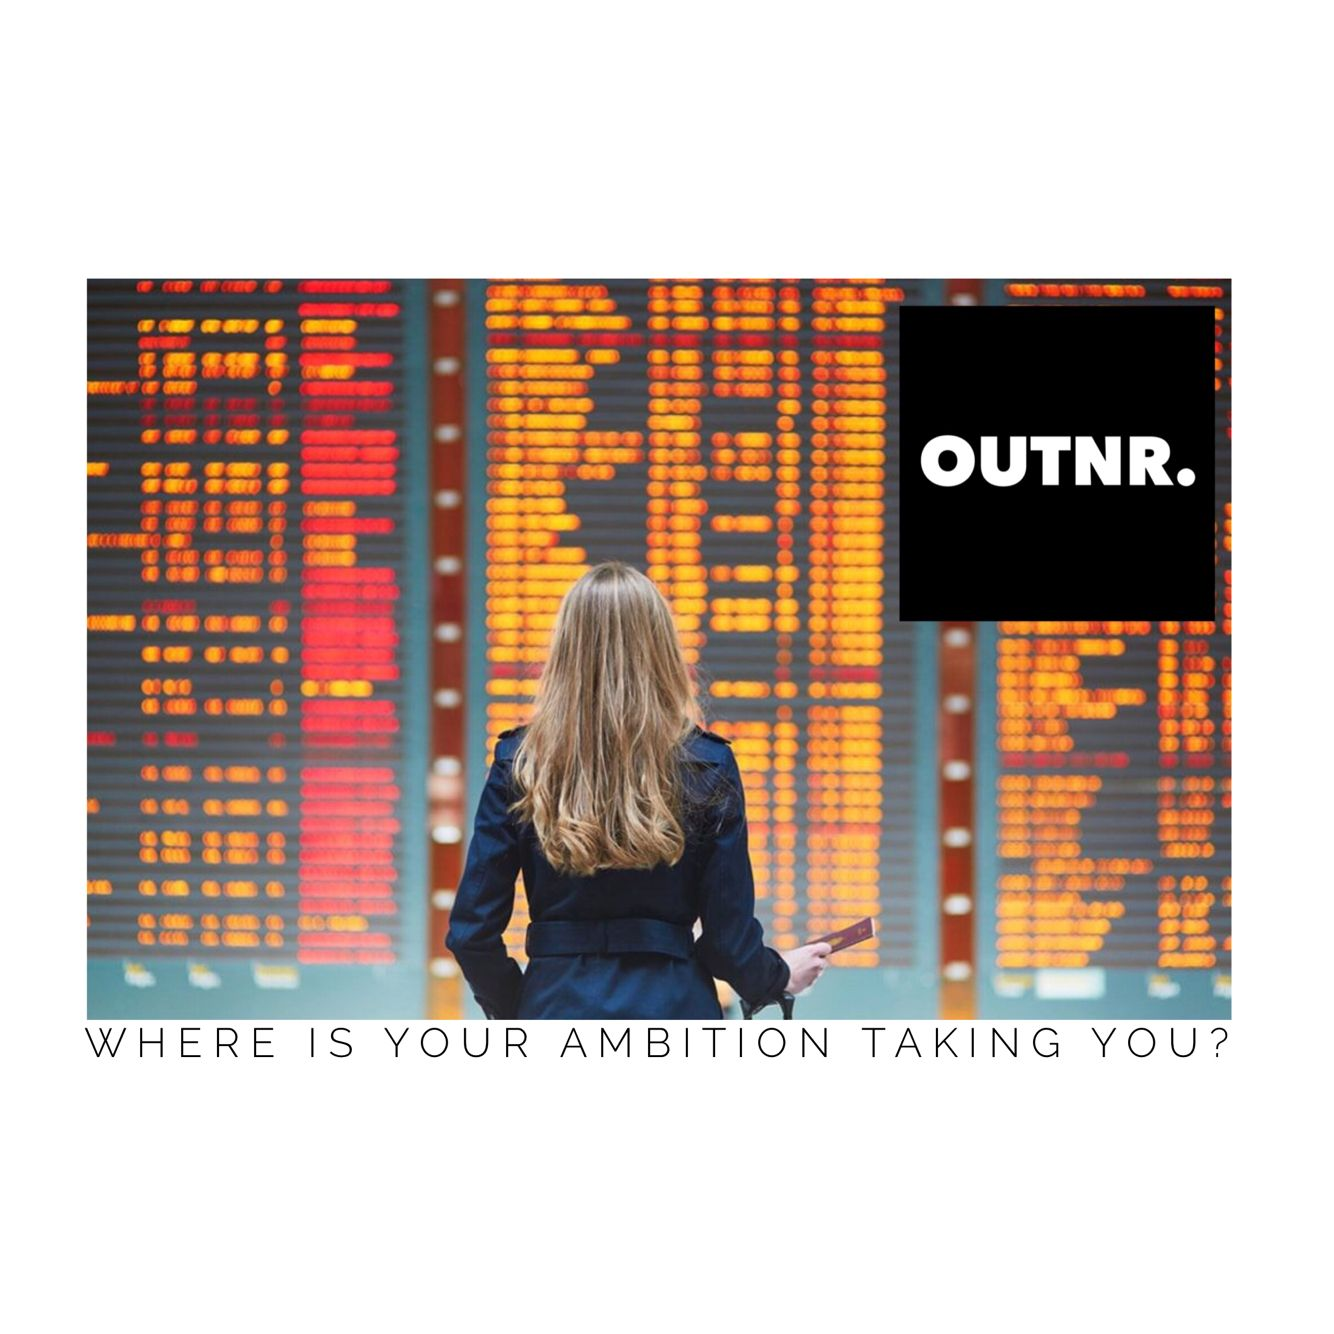 Where is your ambition taking you? www.OUTNR.org